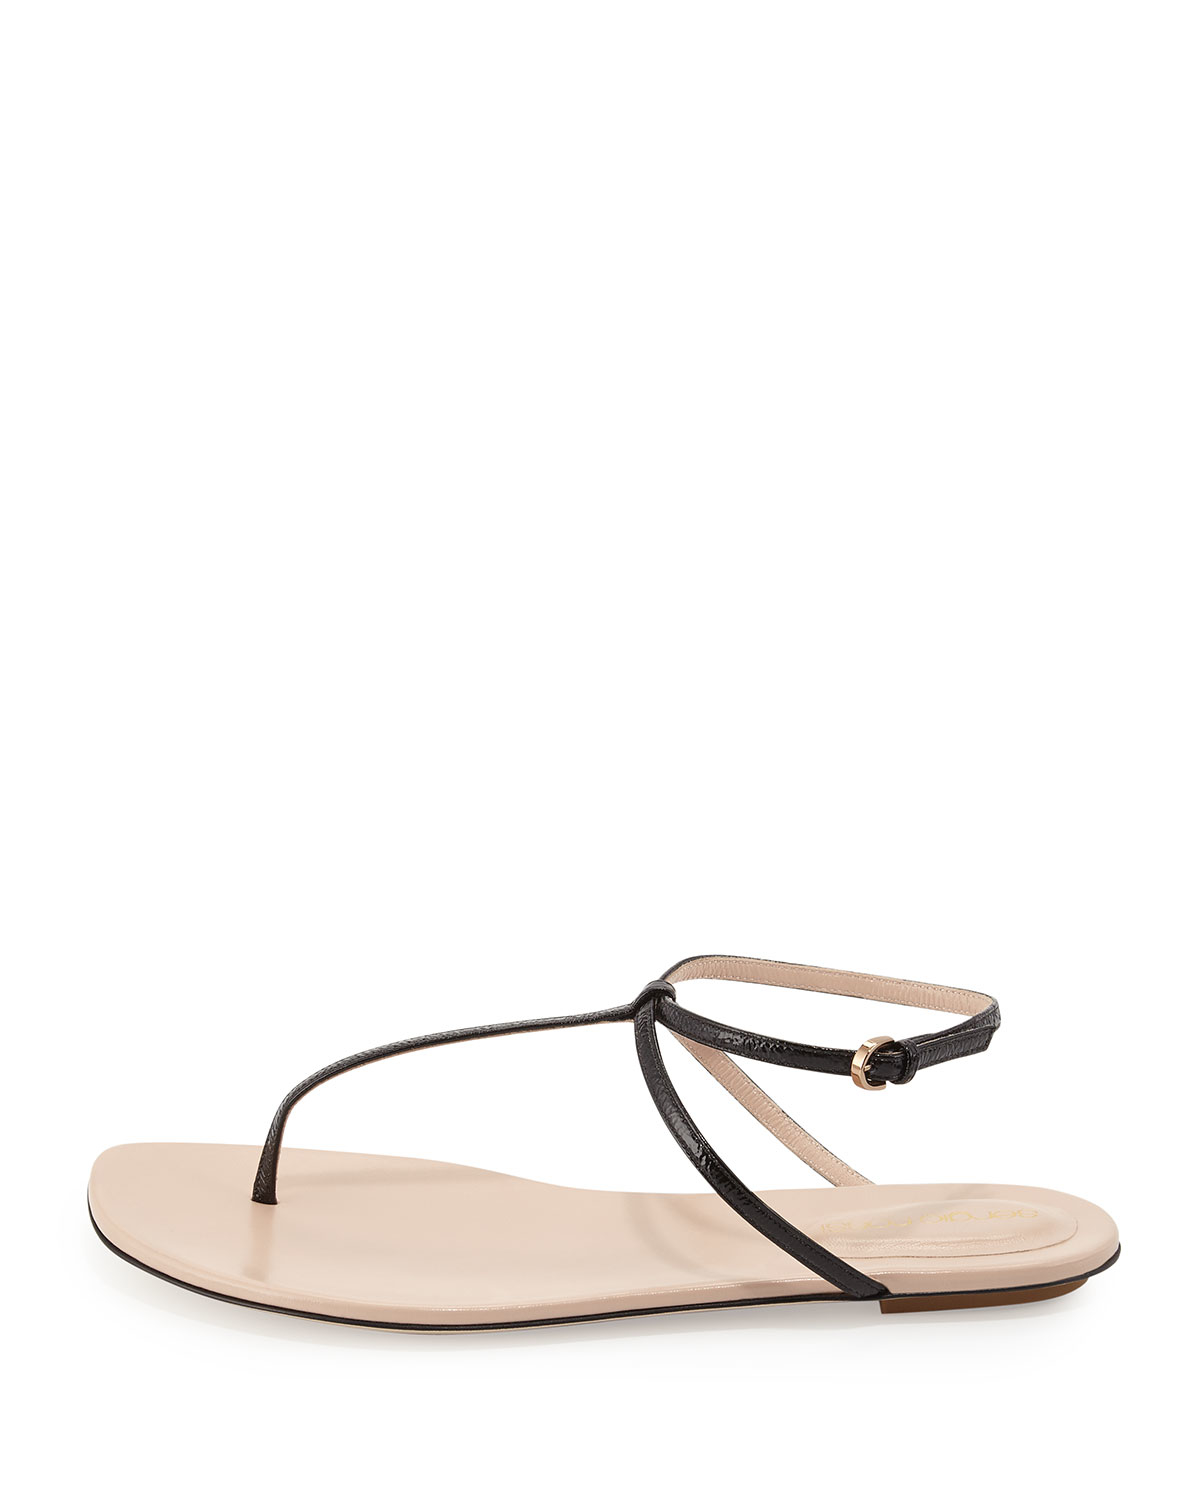 bf1ffbf3437e Sergio Rossi Skinny-strap Leather Thong Sandal in Black - Lyst